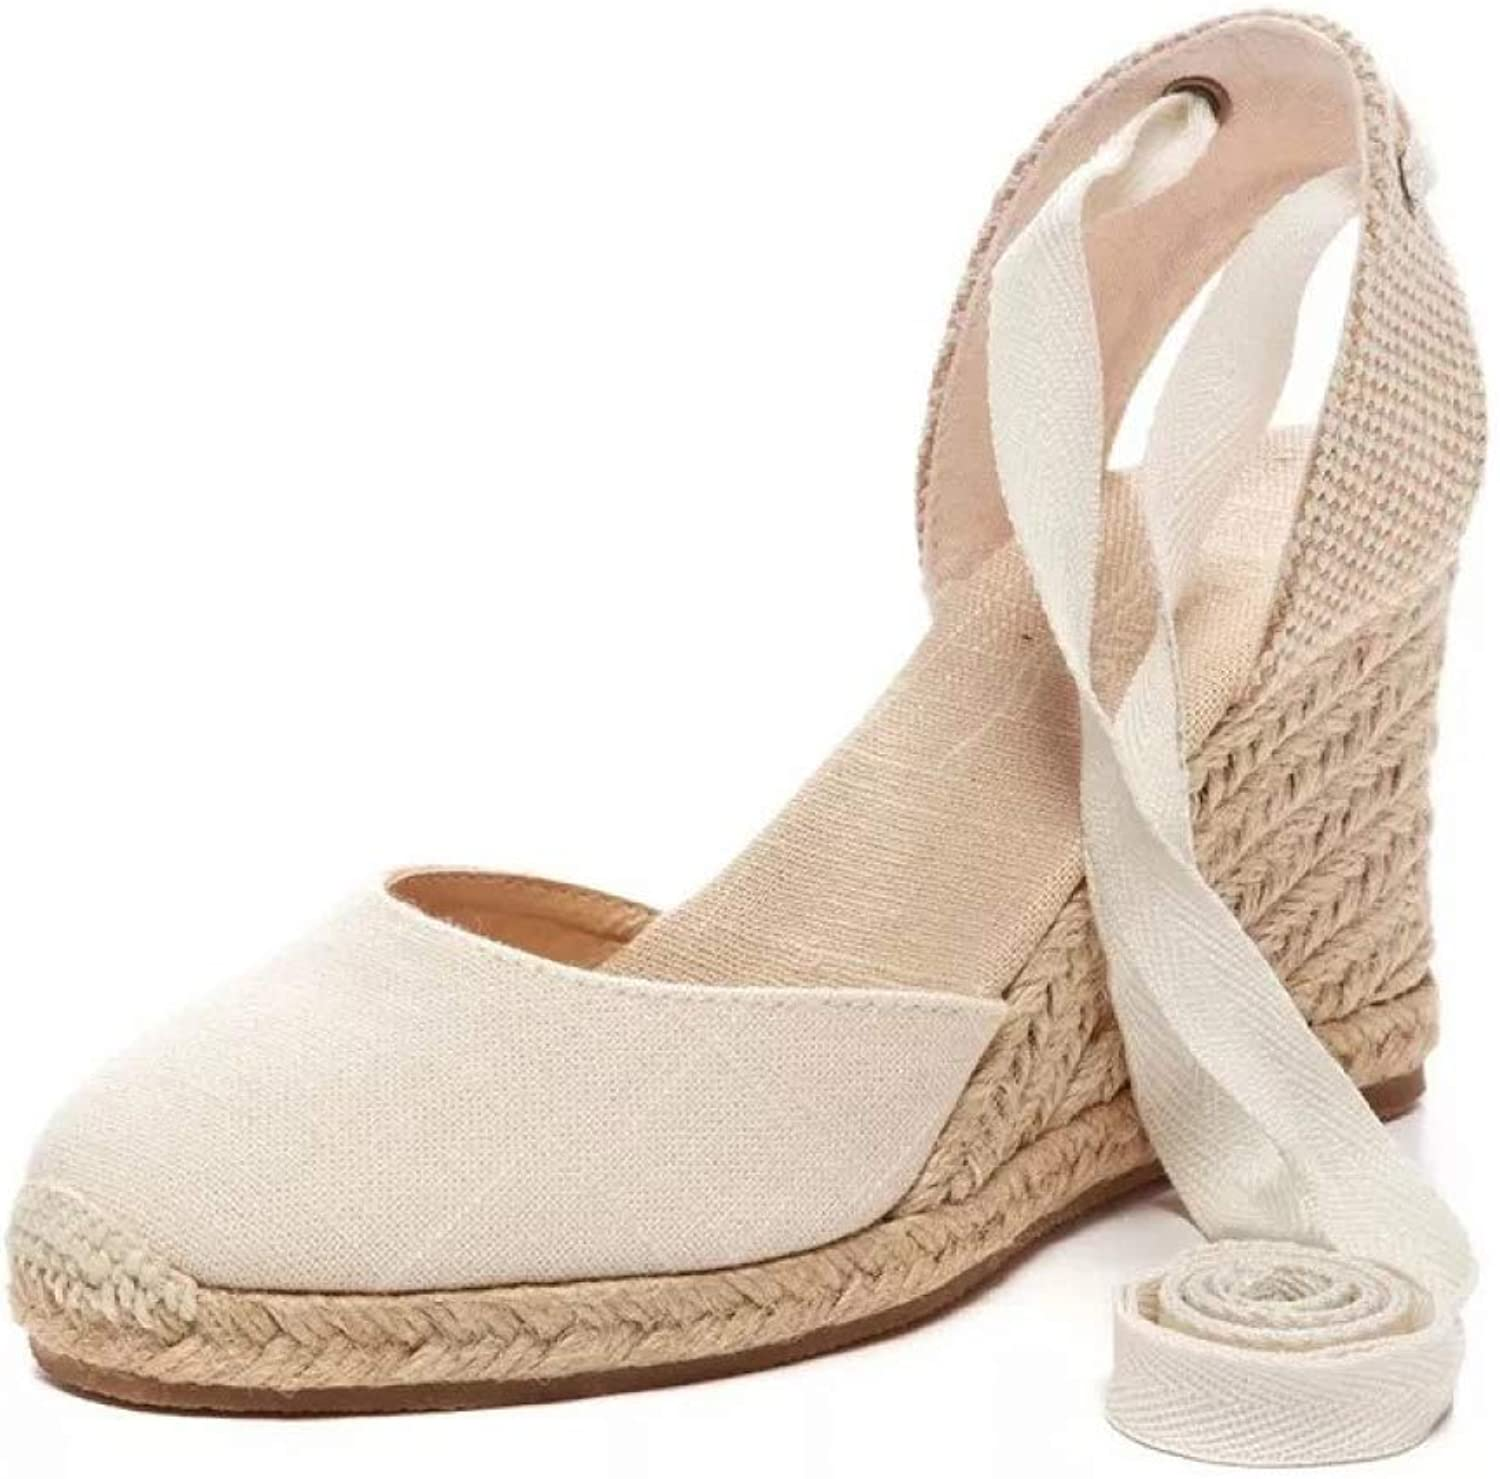 Woman's Closed Toe Straw Wedge Platform High Heel Ankle Strap Sandals Summer Spring Casual shoes